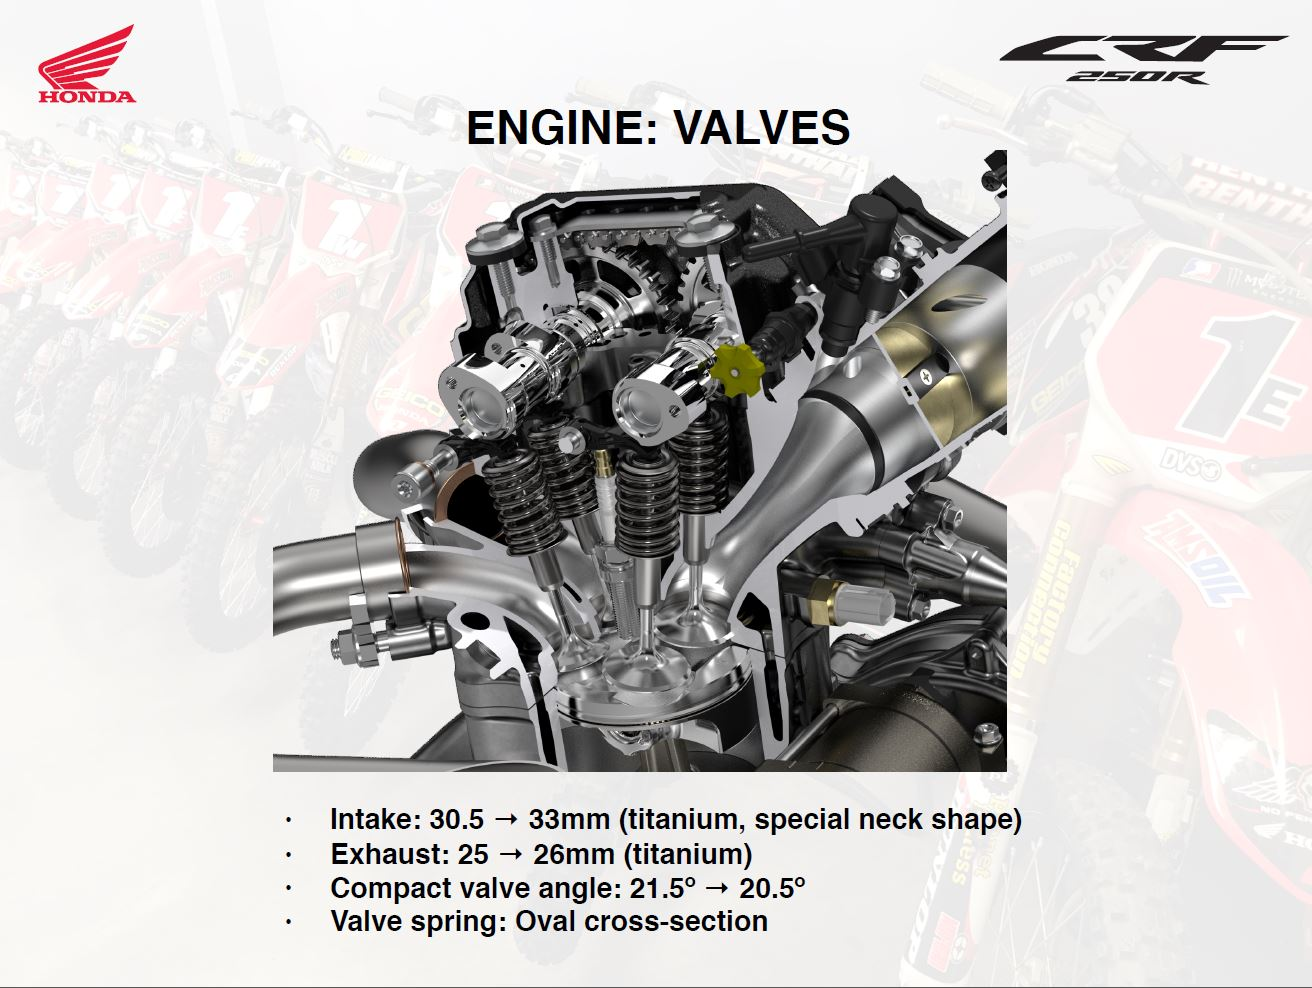 Honda Reveals Electricstart 2018 Crf250r Dirt Bike Magazine. Standards For Vehicle Packaging In A Motocross Machine With Highly Concentrated Mass And Very Low Center Of Gravity The 2018 Crf250r Follows Suit. Honda. Honda Crf 250 Engine Diagram At Scoala.co